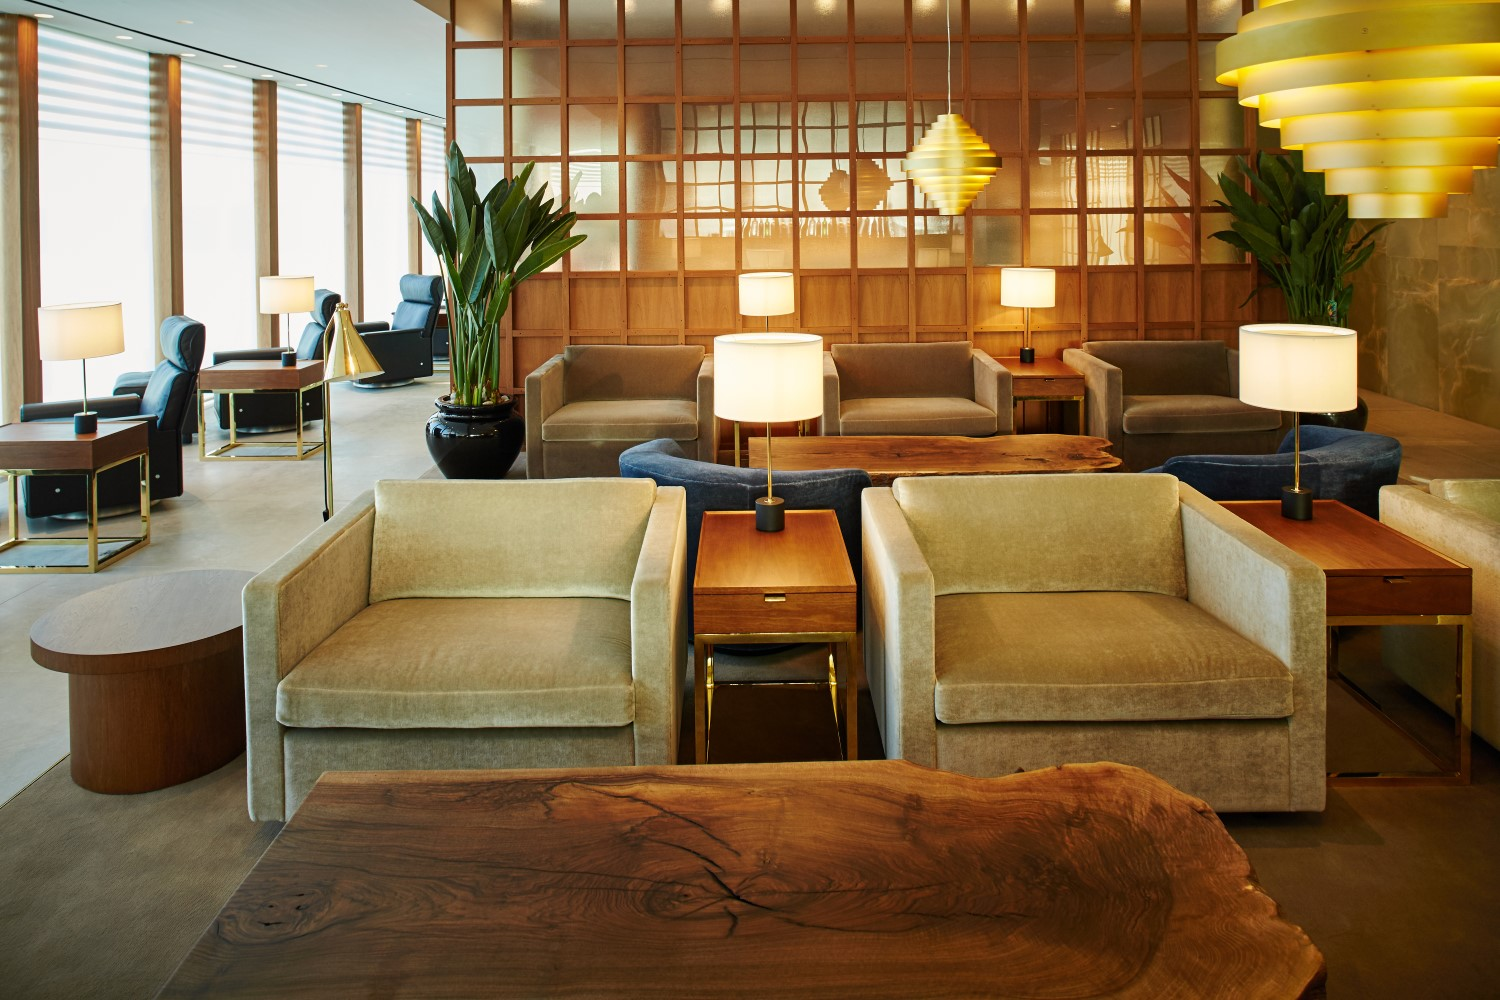 . Cathay s much delayed LHR lounges go full mid century modern